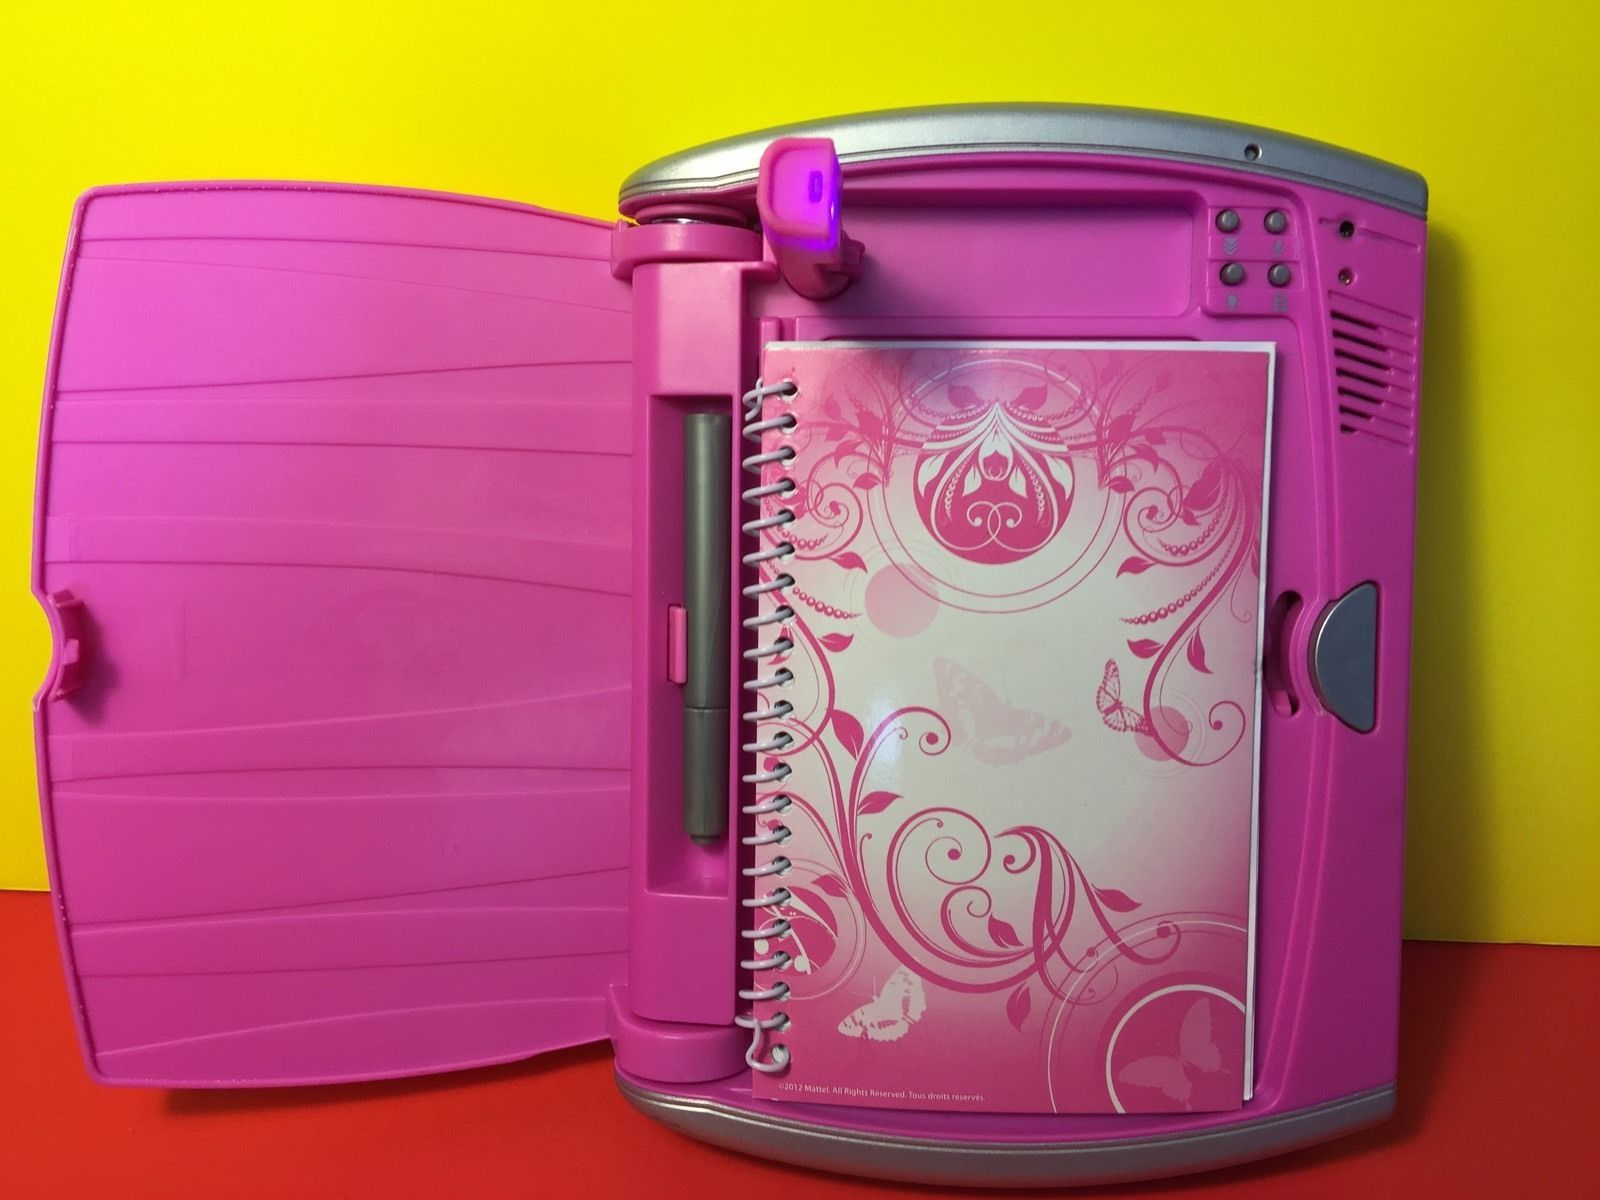 8335141a1f4 Mattel My Password Journal Tech Electronic Diary Voice Activated Lock Pink